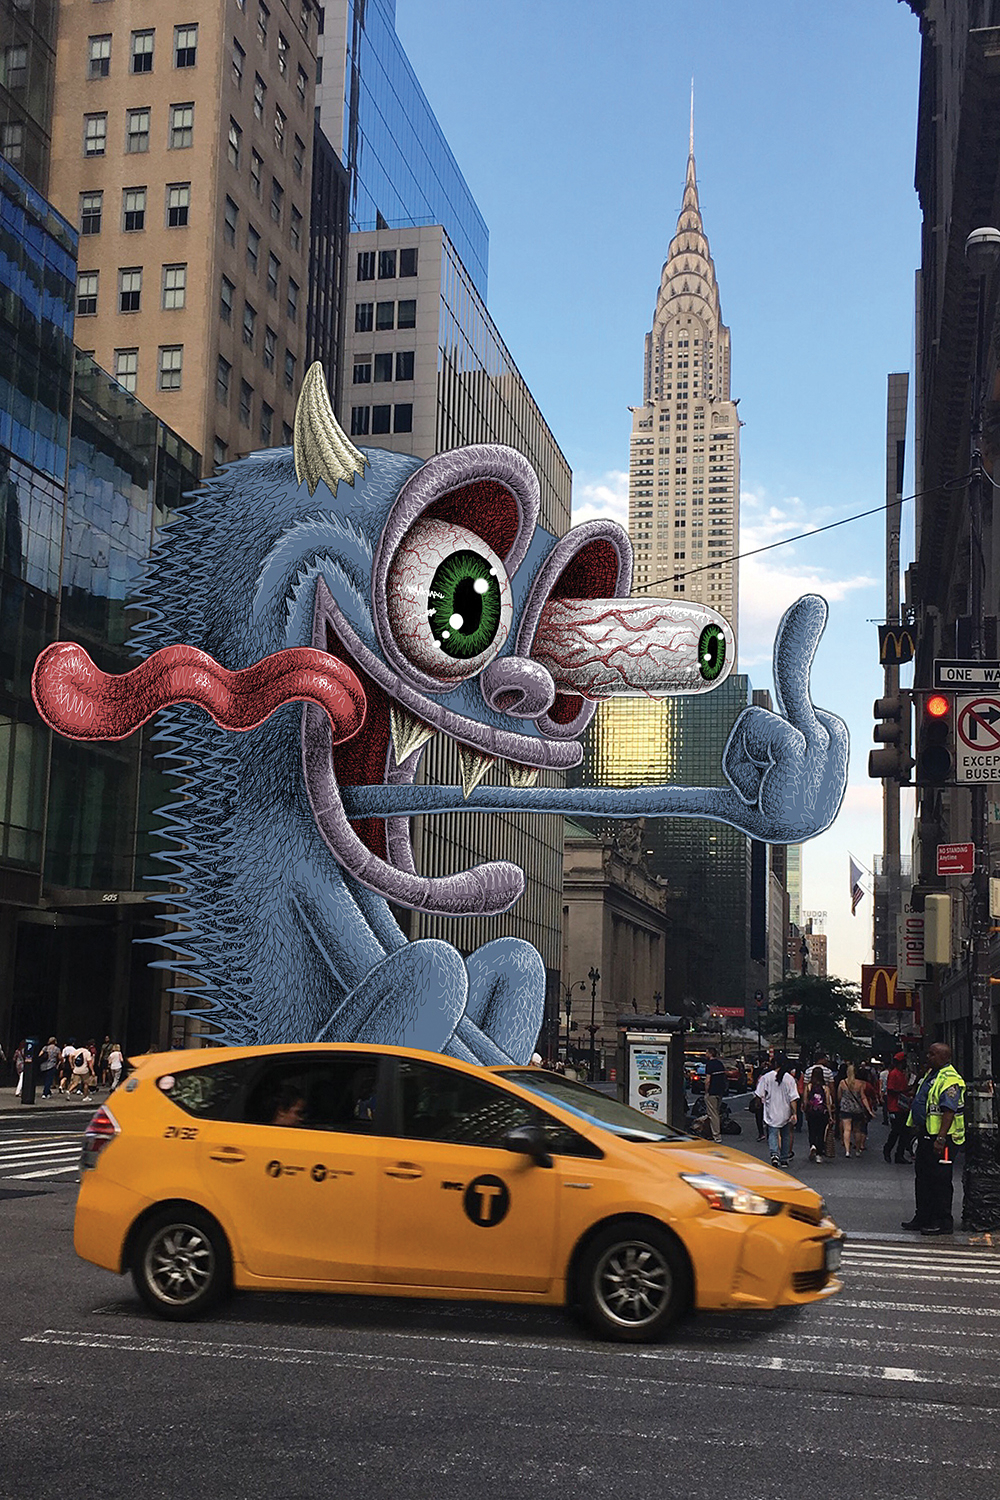 a giant monster giving the middle finger with its tongue out while driving a taxi cab in new york